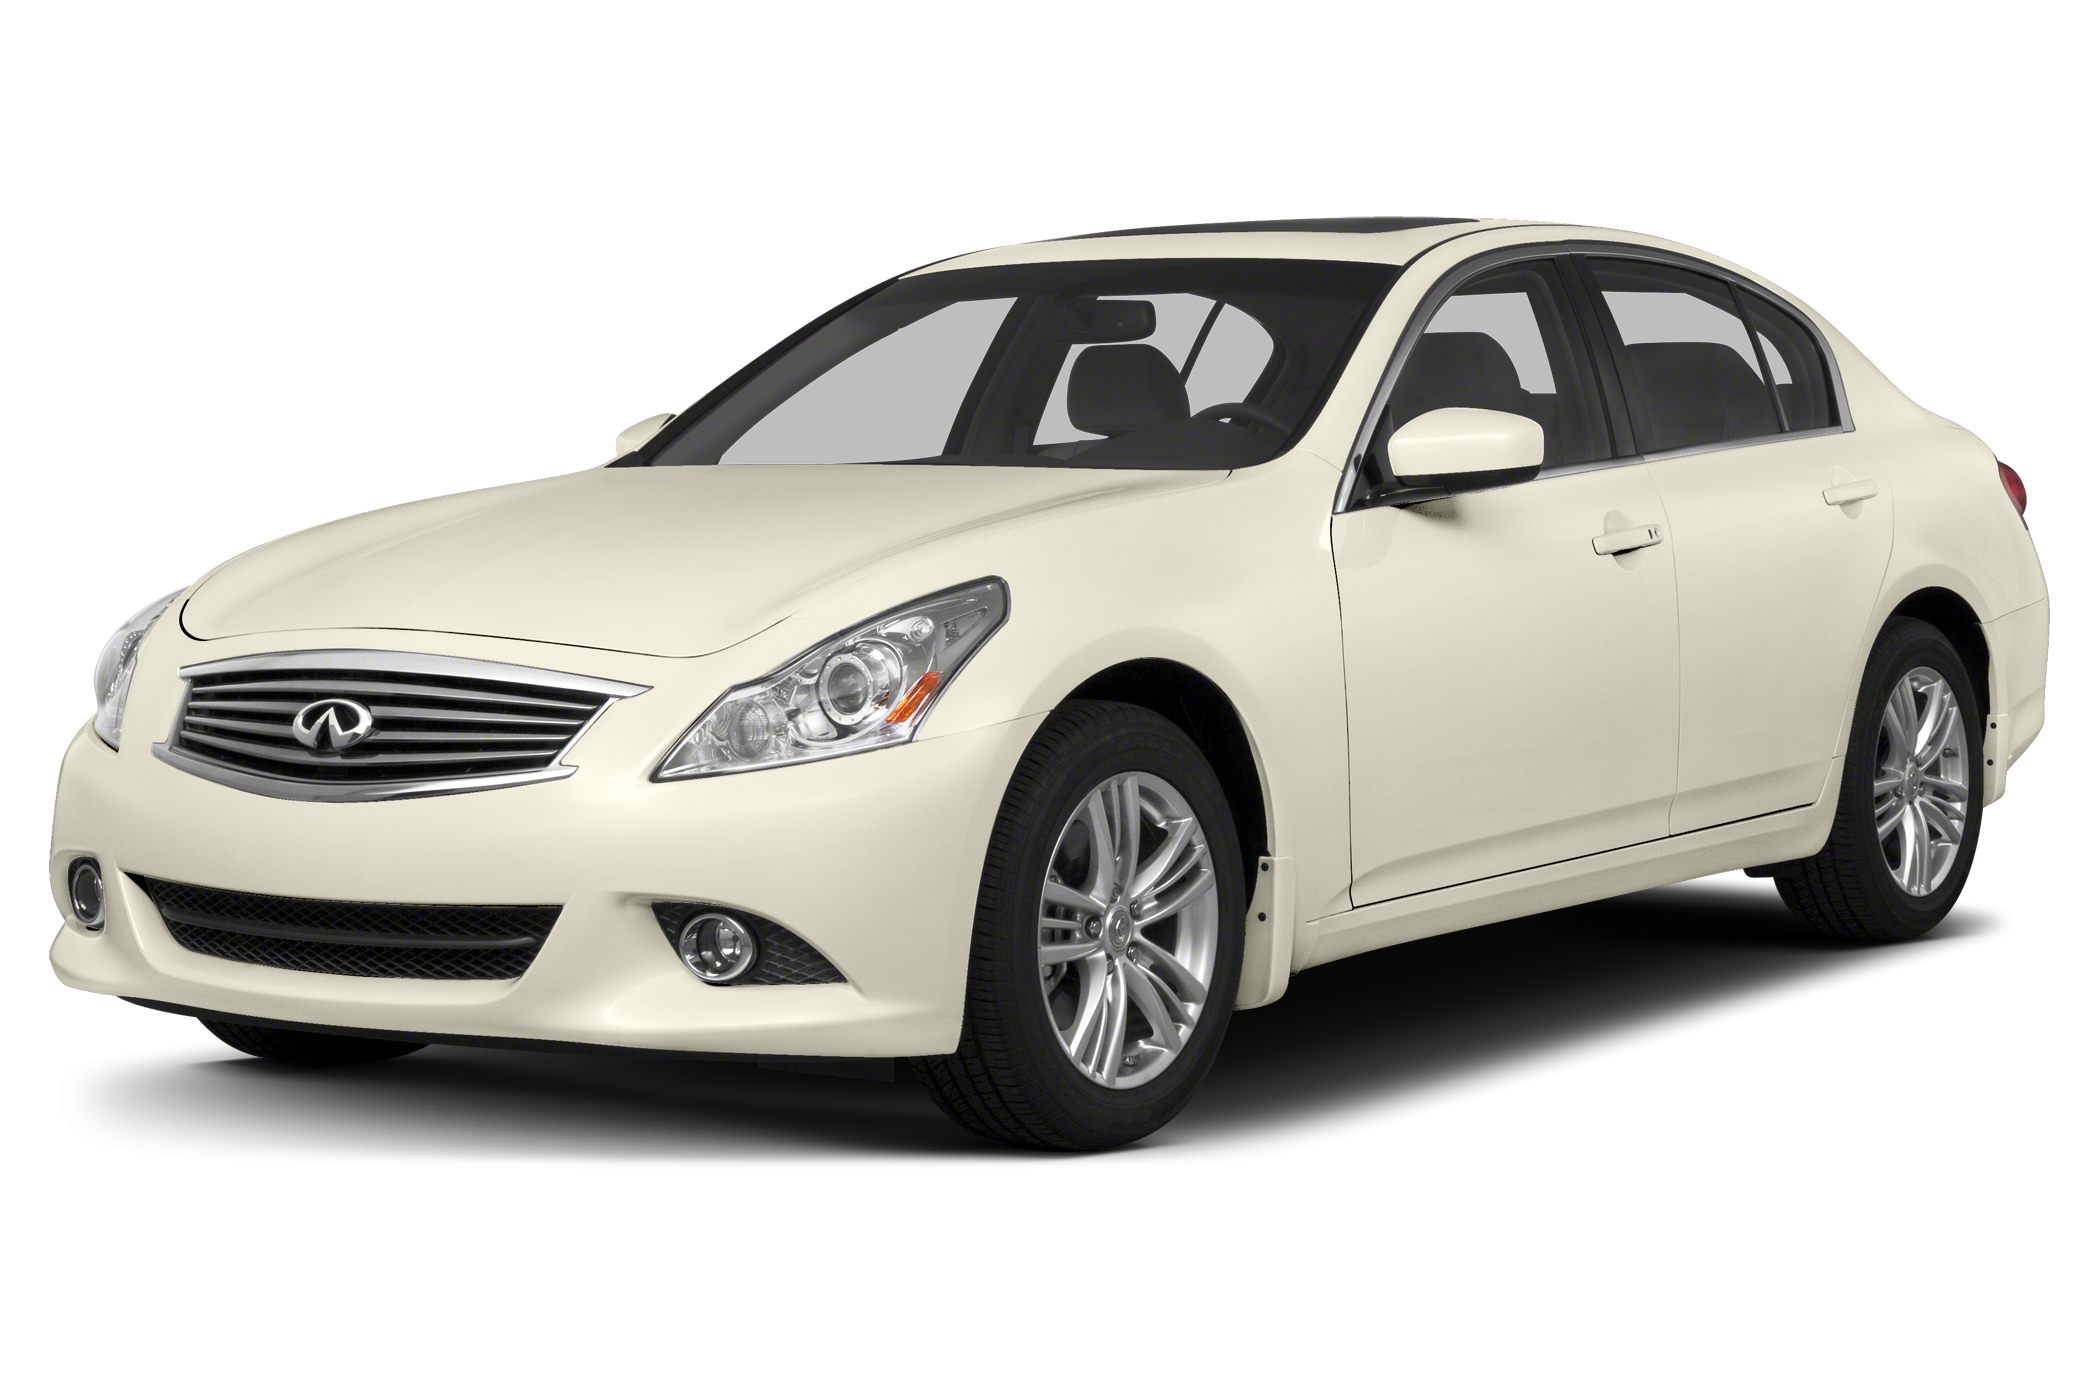 2015 Infiniti Q40 Base Sedan for sale in Houston for $39,395 with 0 miles